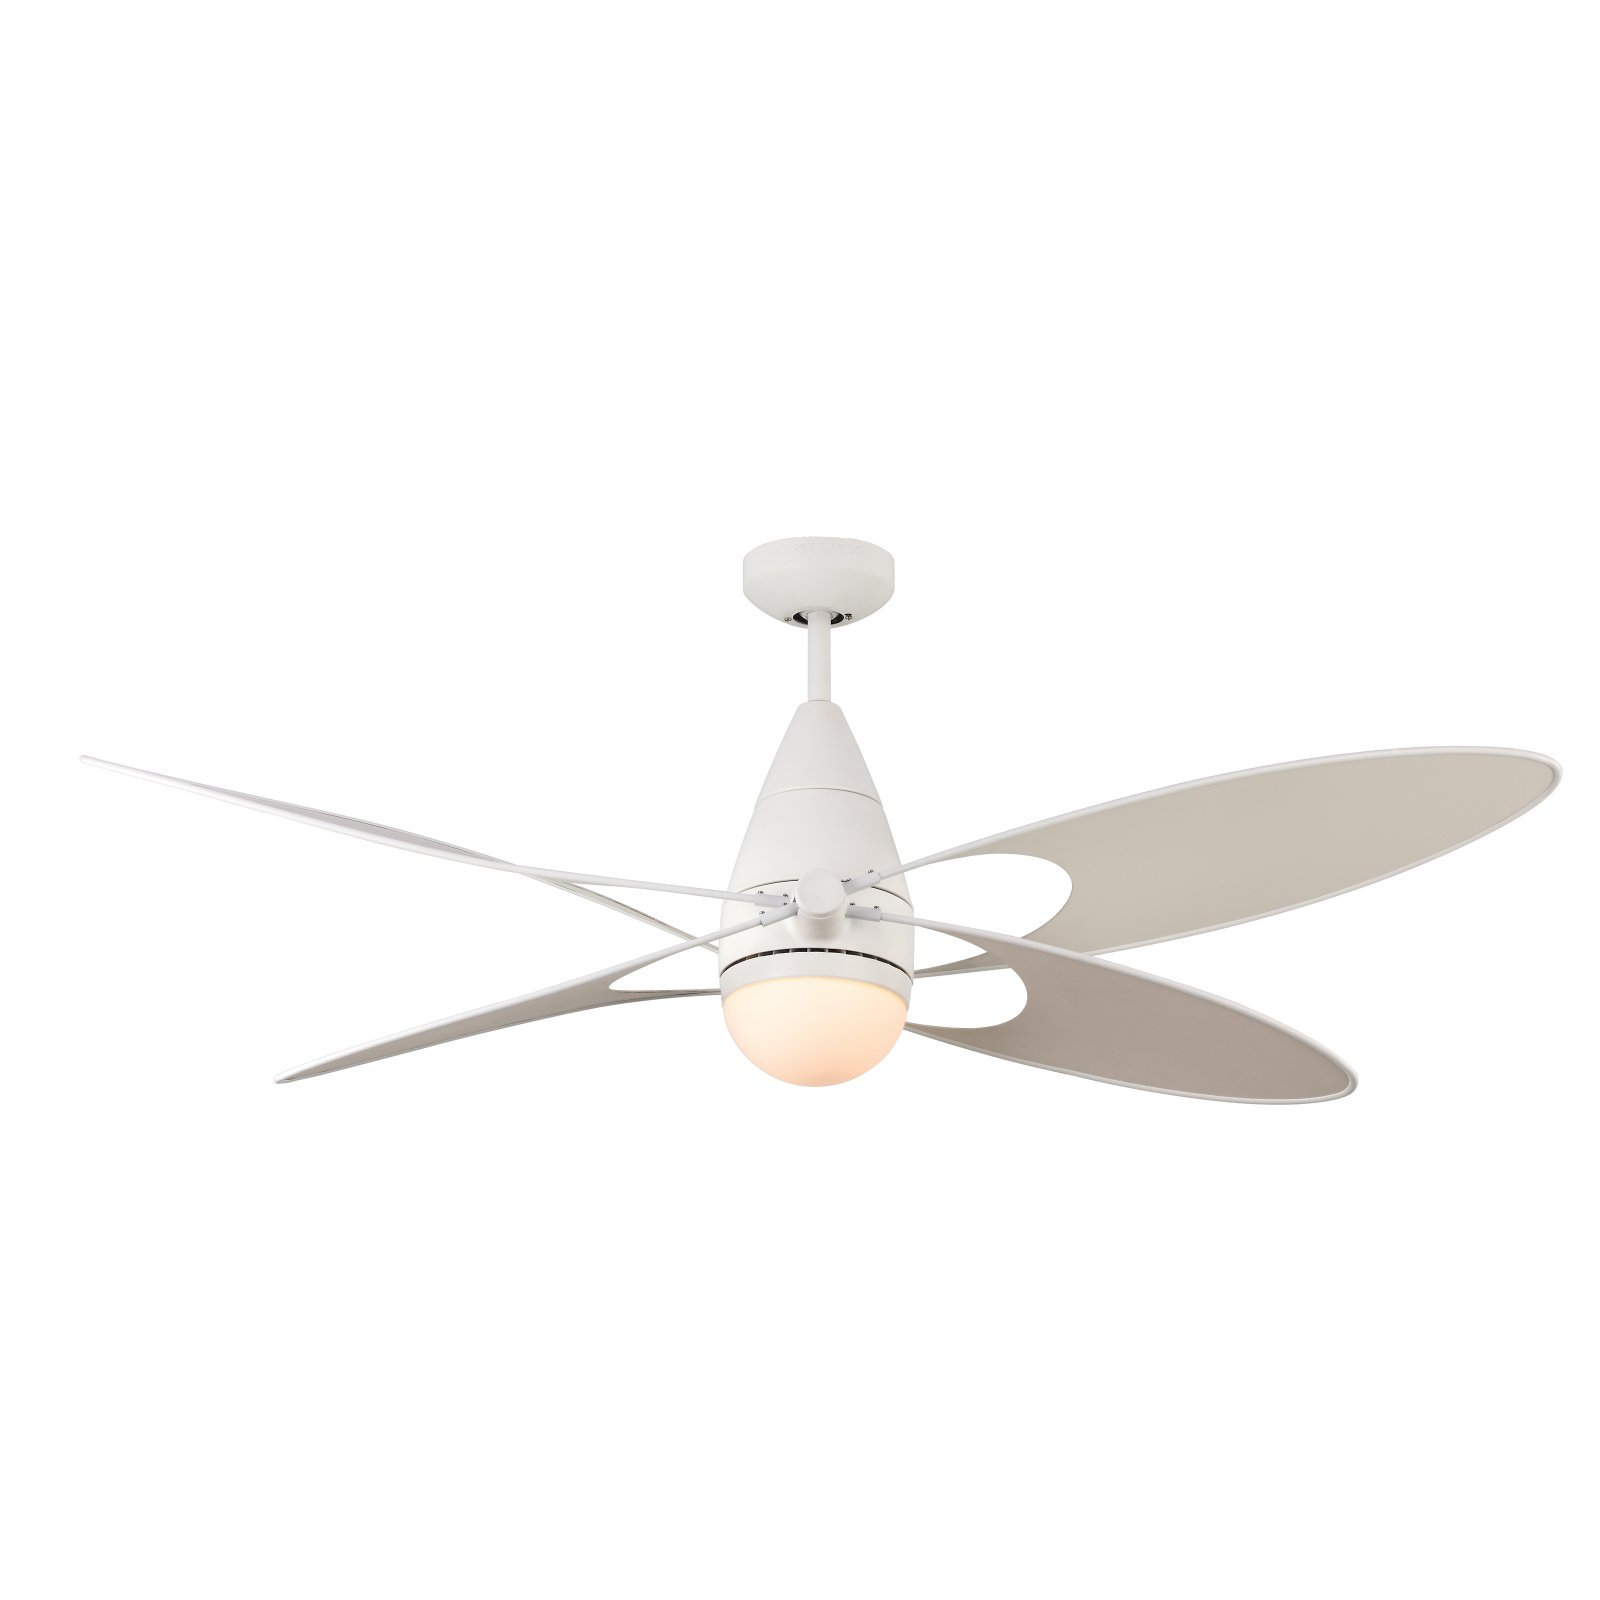 Monte Carlo 4BFR54 Butterfly 54 in Ceiling Fan Walmart